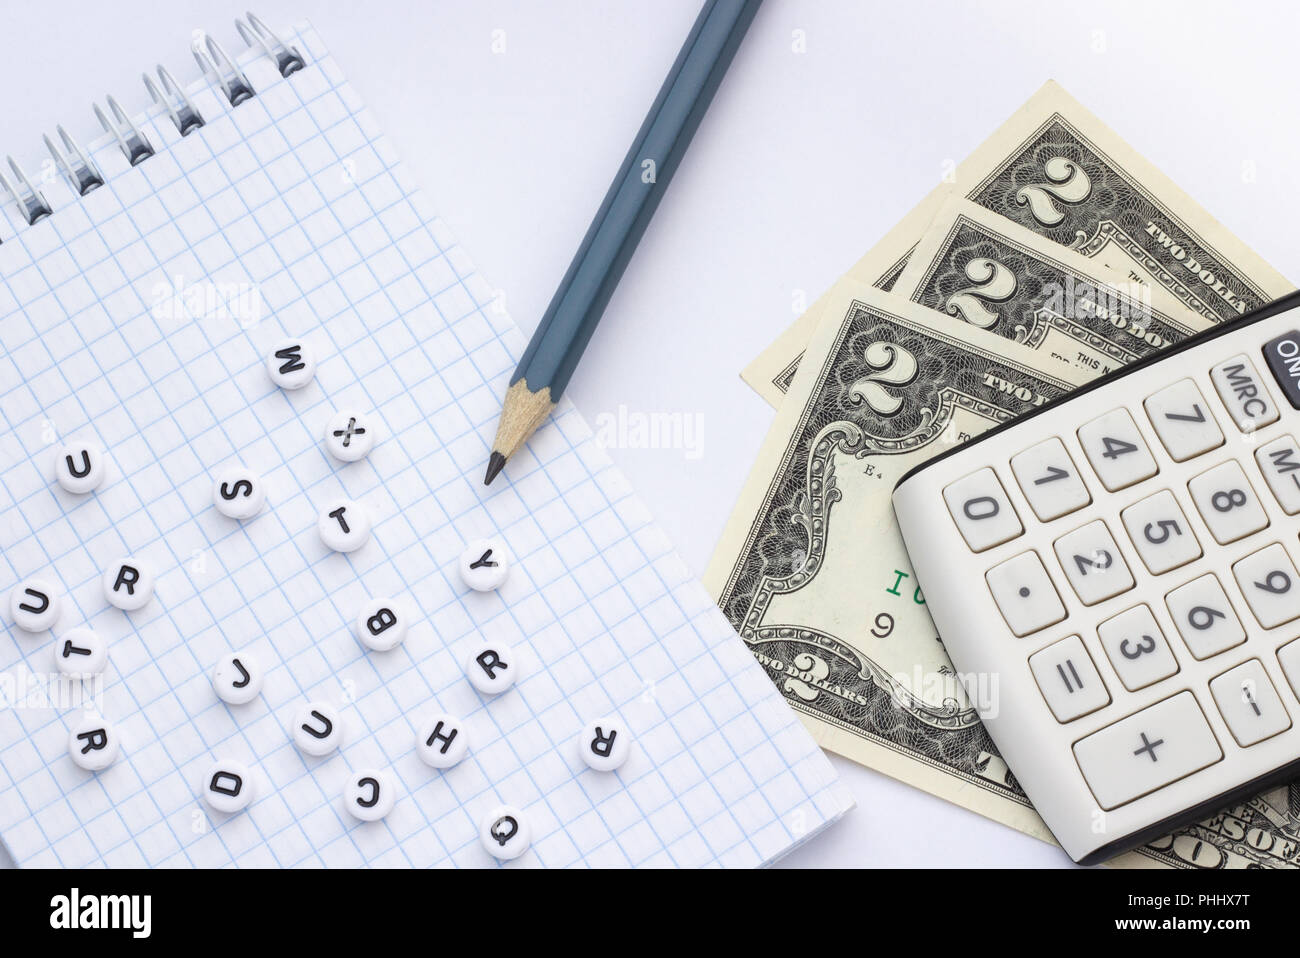 close-up, on a white background calculator, money and a notepad with